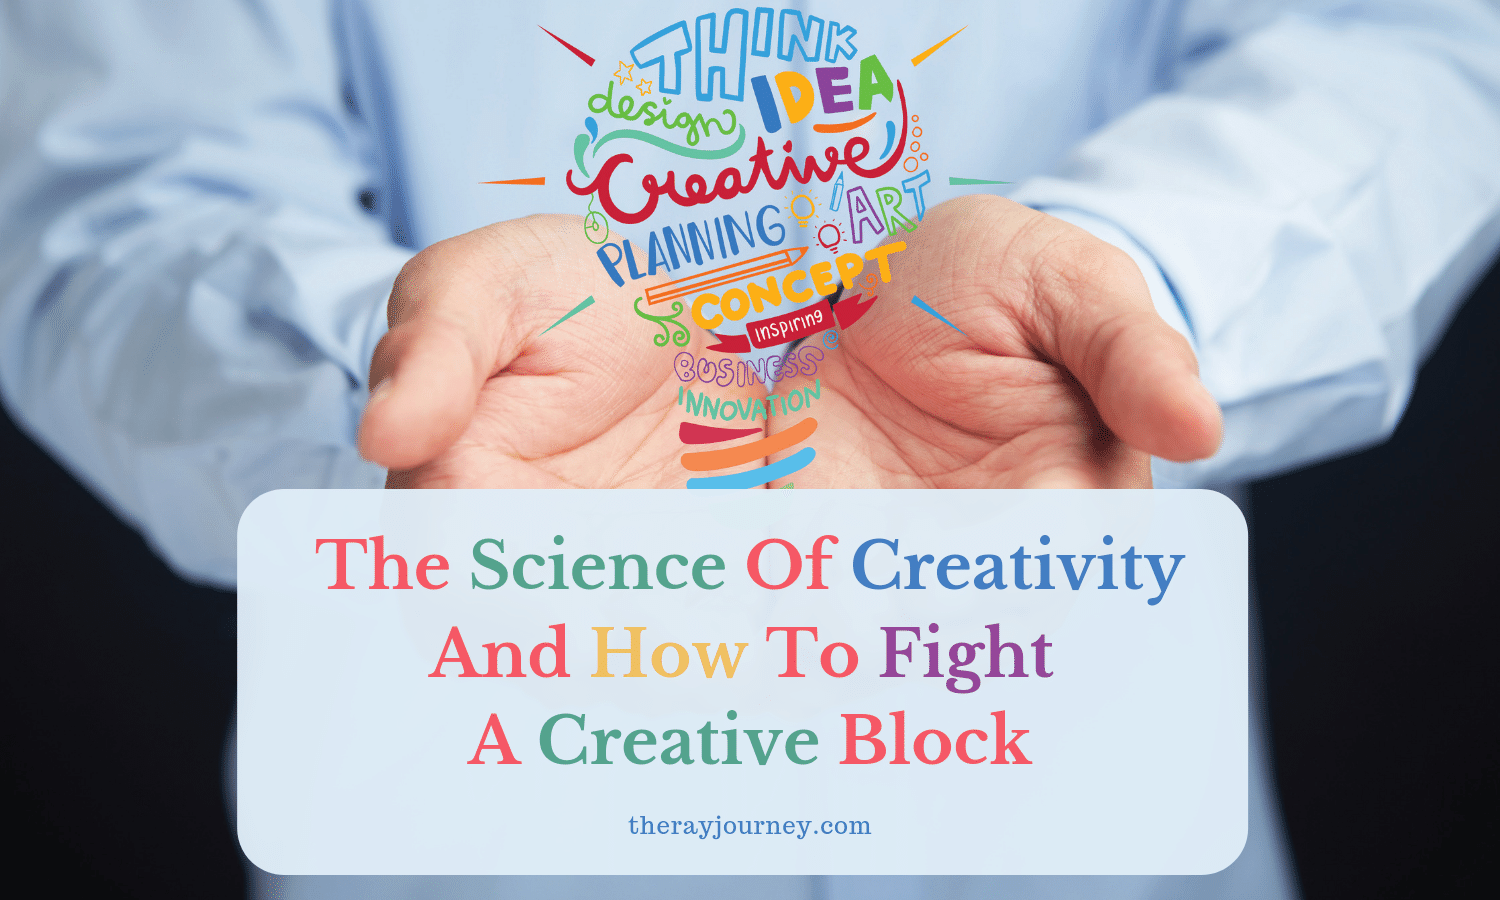 The Science Of Creativity And How To Fight A Creative Block